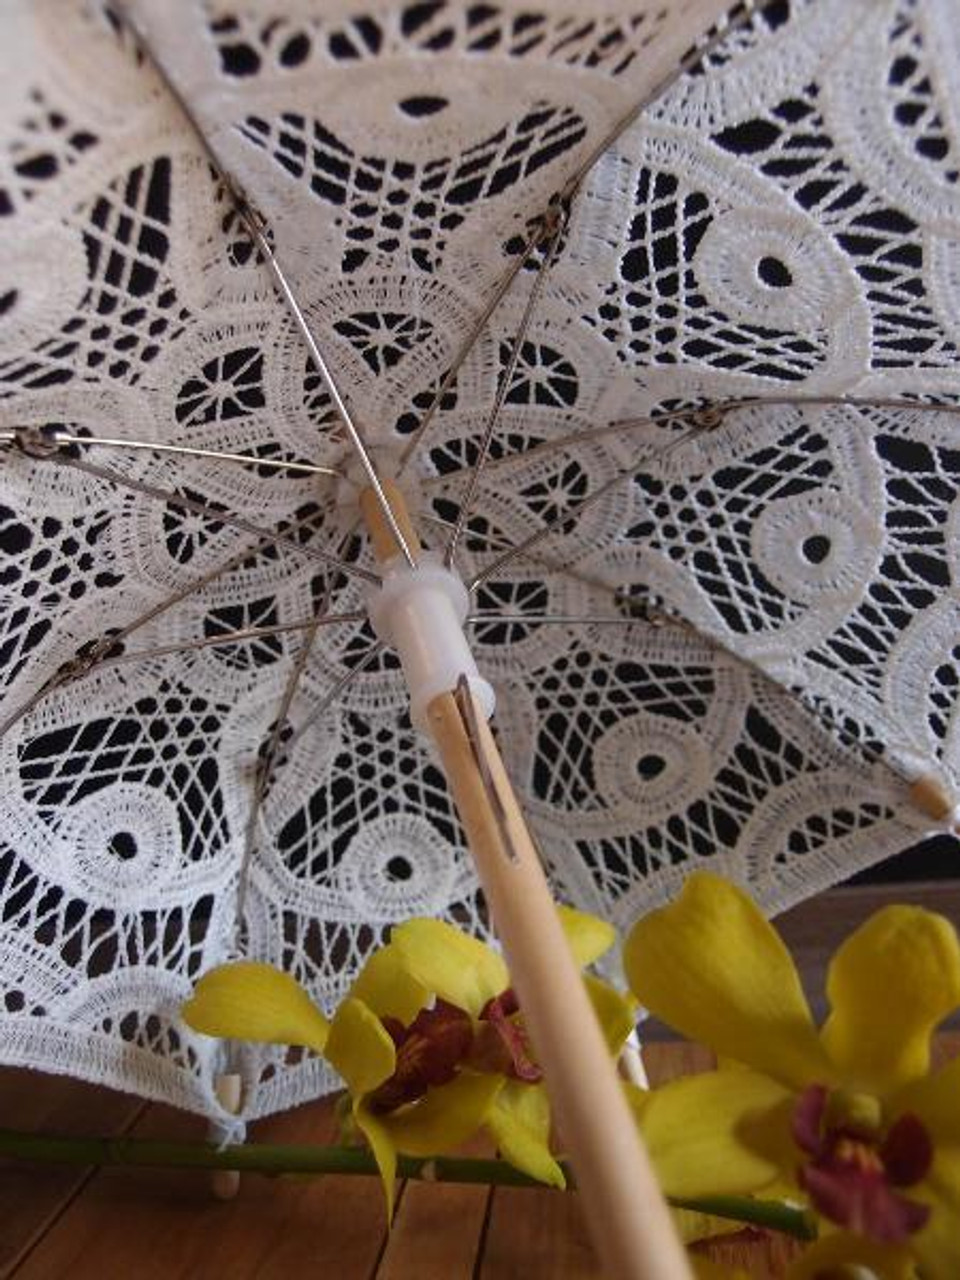 Decorative parasol that features an intricate cutwork and battenburg lace design. Each lace parasol has a bamboo handle & ferrule and stainless steel ribs.